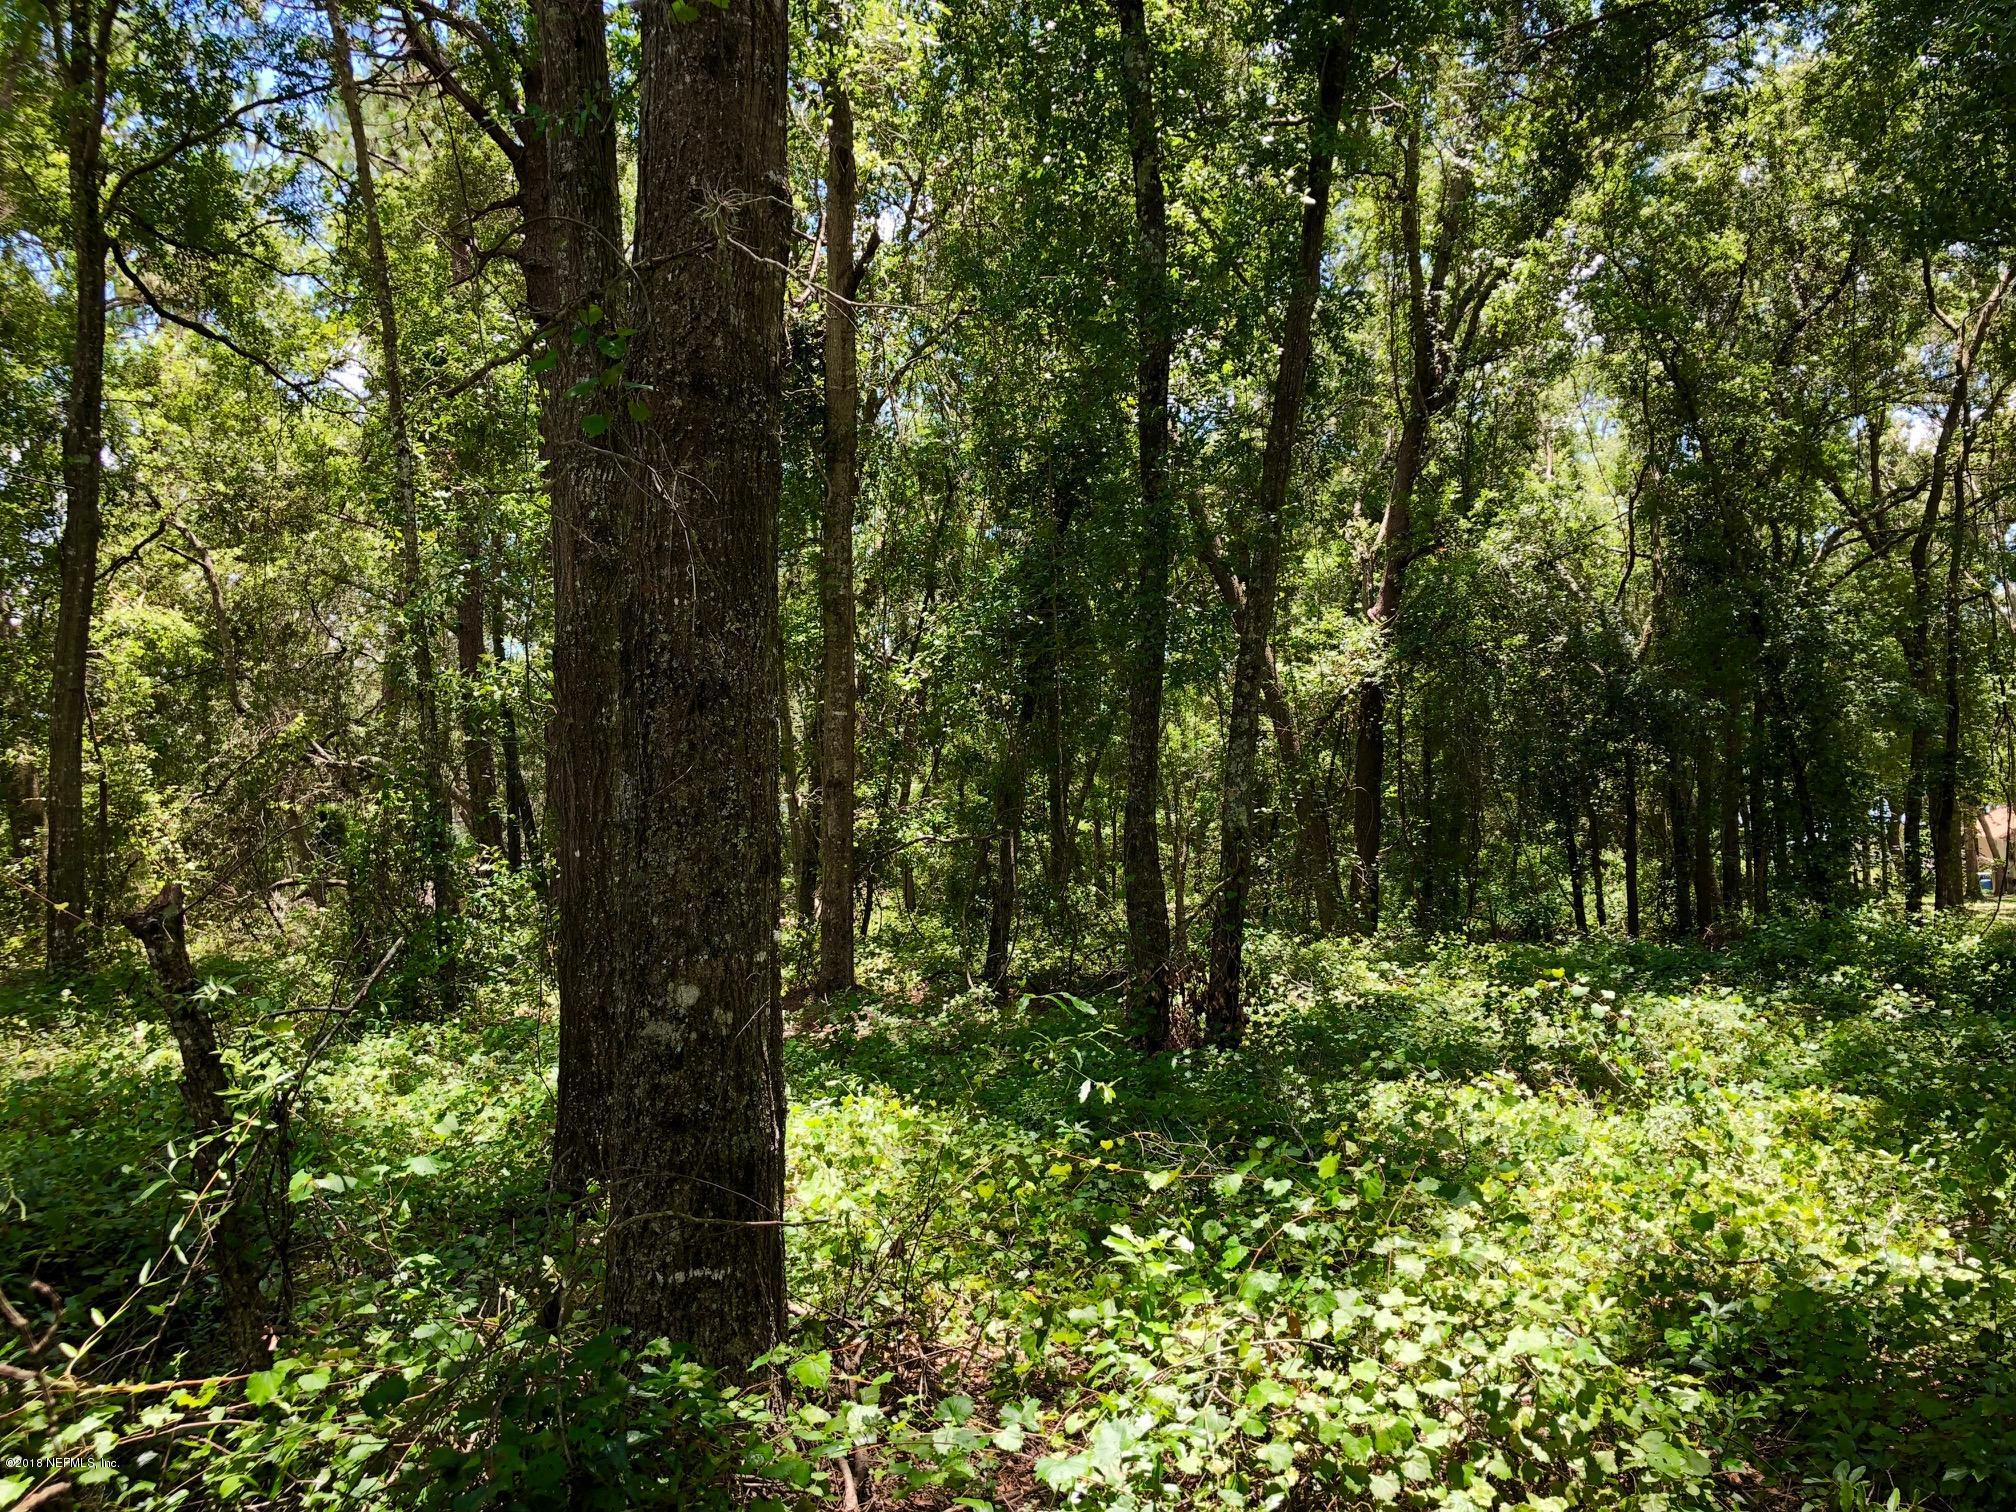 000 STATE ROAD 100, KEYSTONE HEIGHTS, FLORIDA 32656, ,Vacant land,For sale,STATE ROAD 100,943224